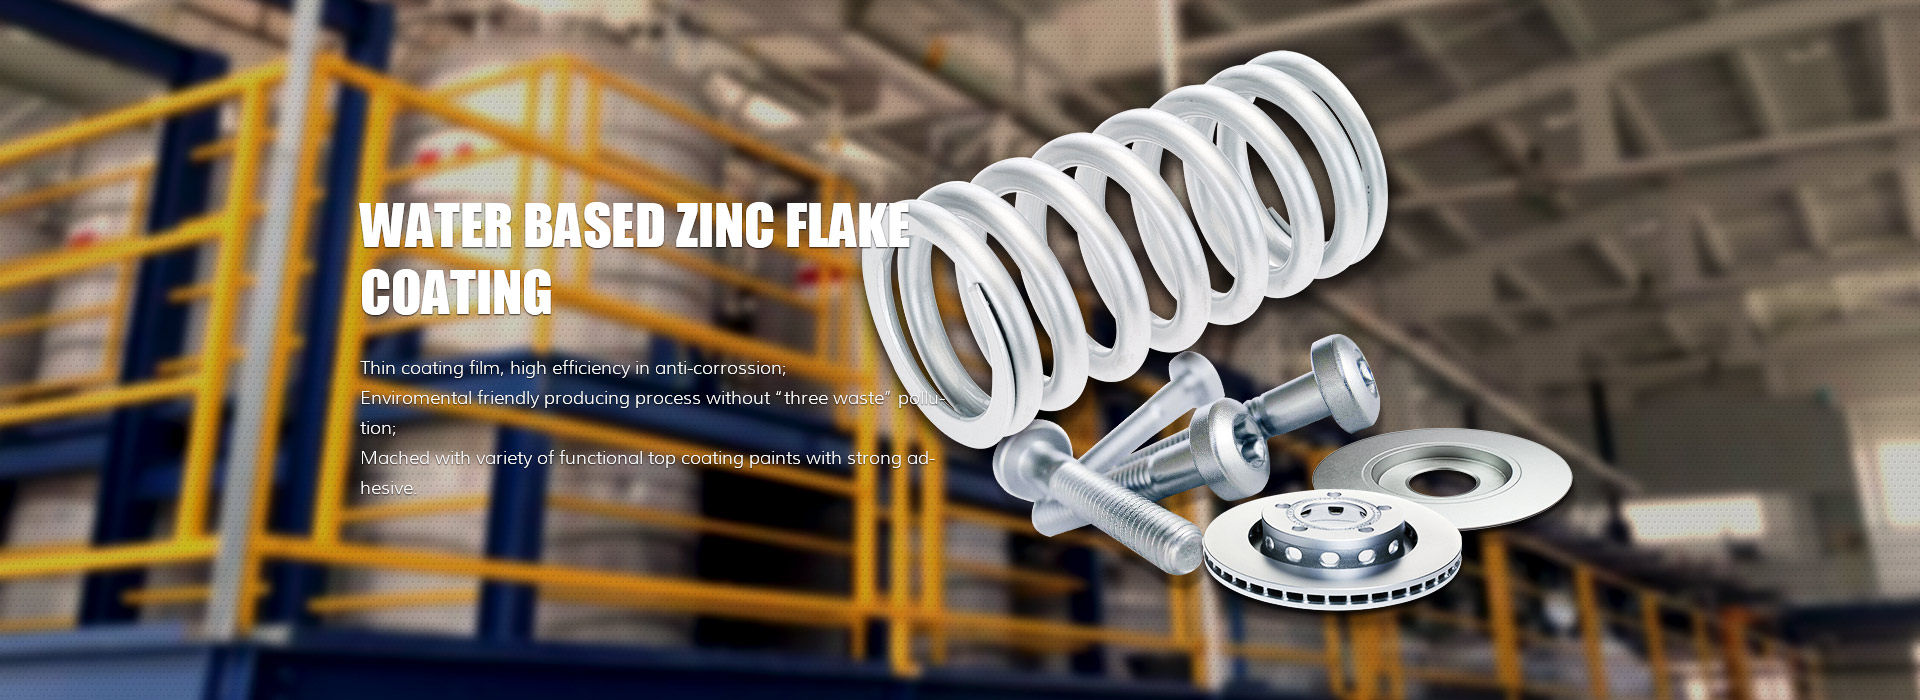 Changzhou Junhe Technology Stock Co.,Ltd Introduces Zinc Flake Coating Line With An Automatic Design Integration That Minimizes Wastes And Saves Labor & Cost